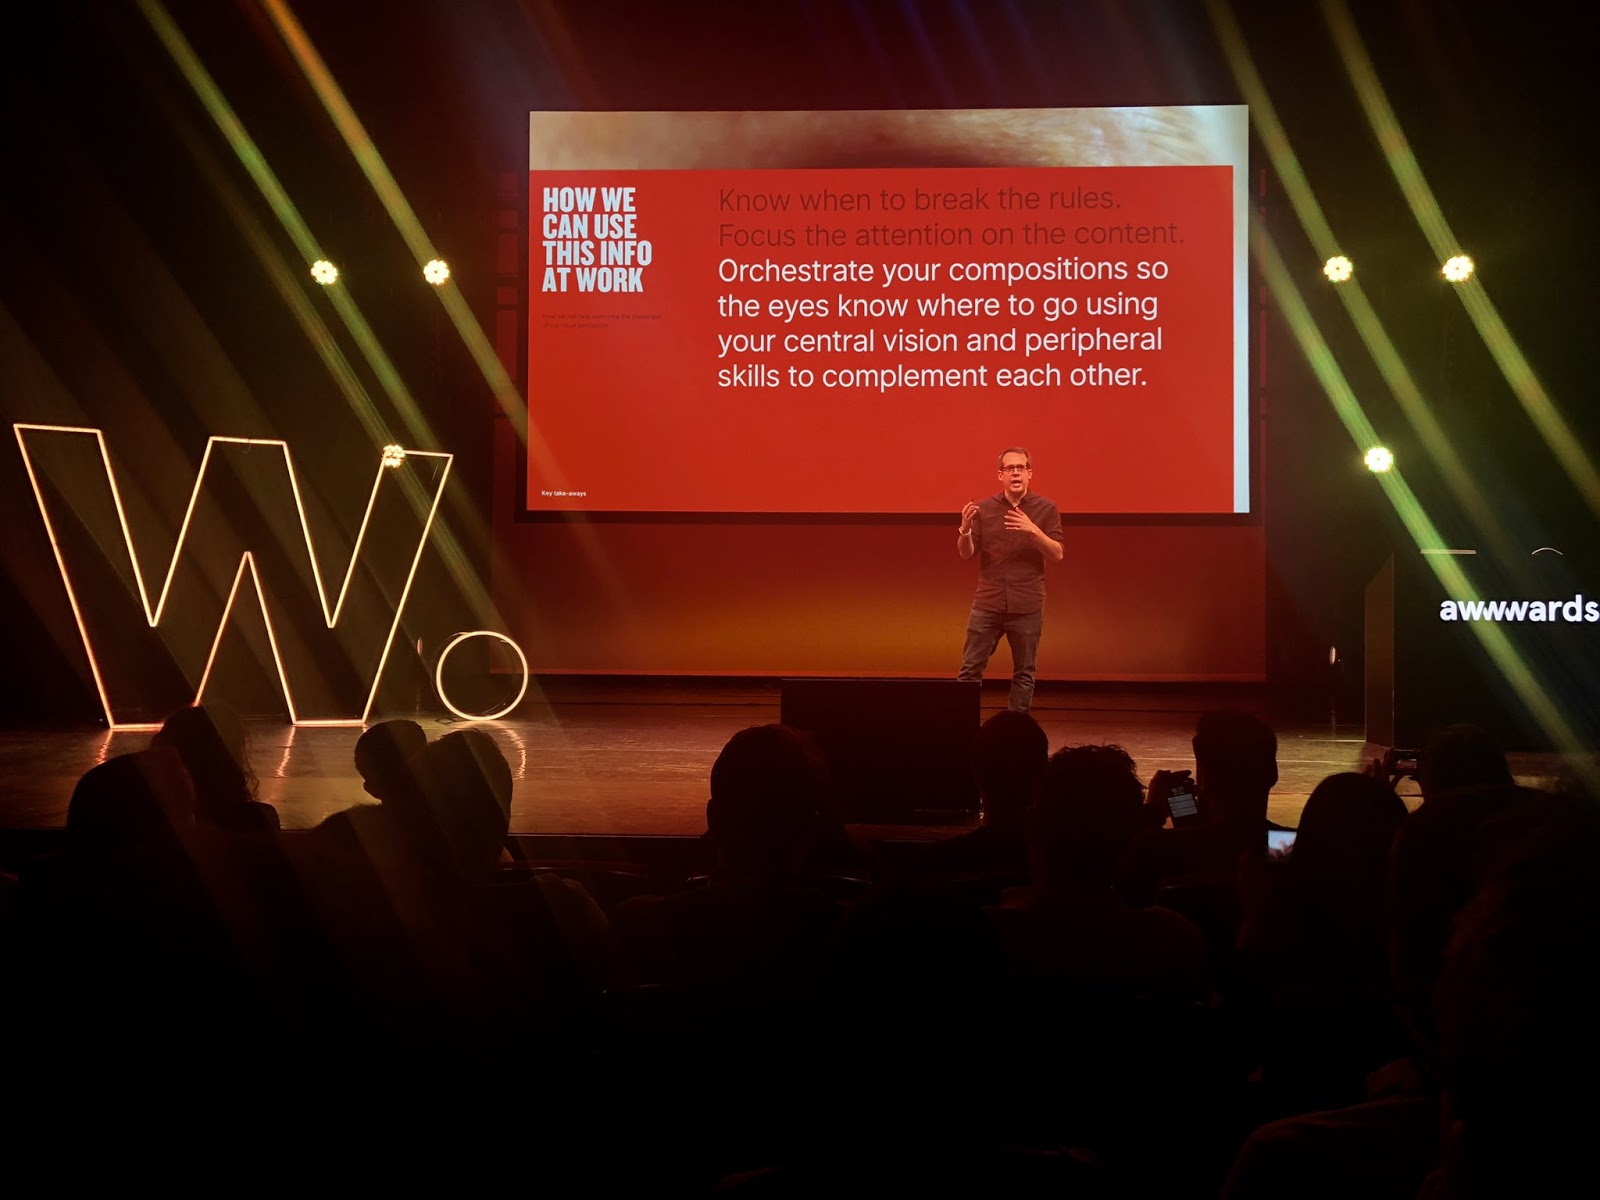 A speaker in the 2019 Awwwards Conference in Amsterdam stage